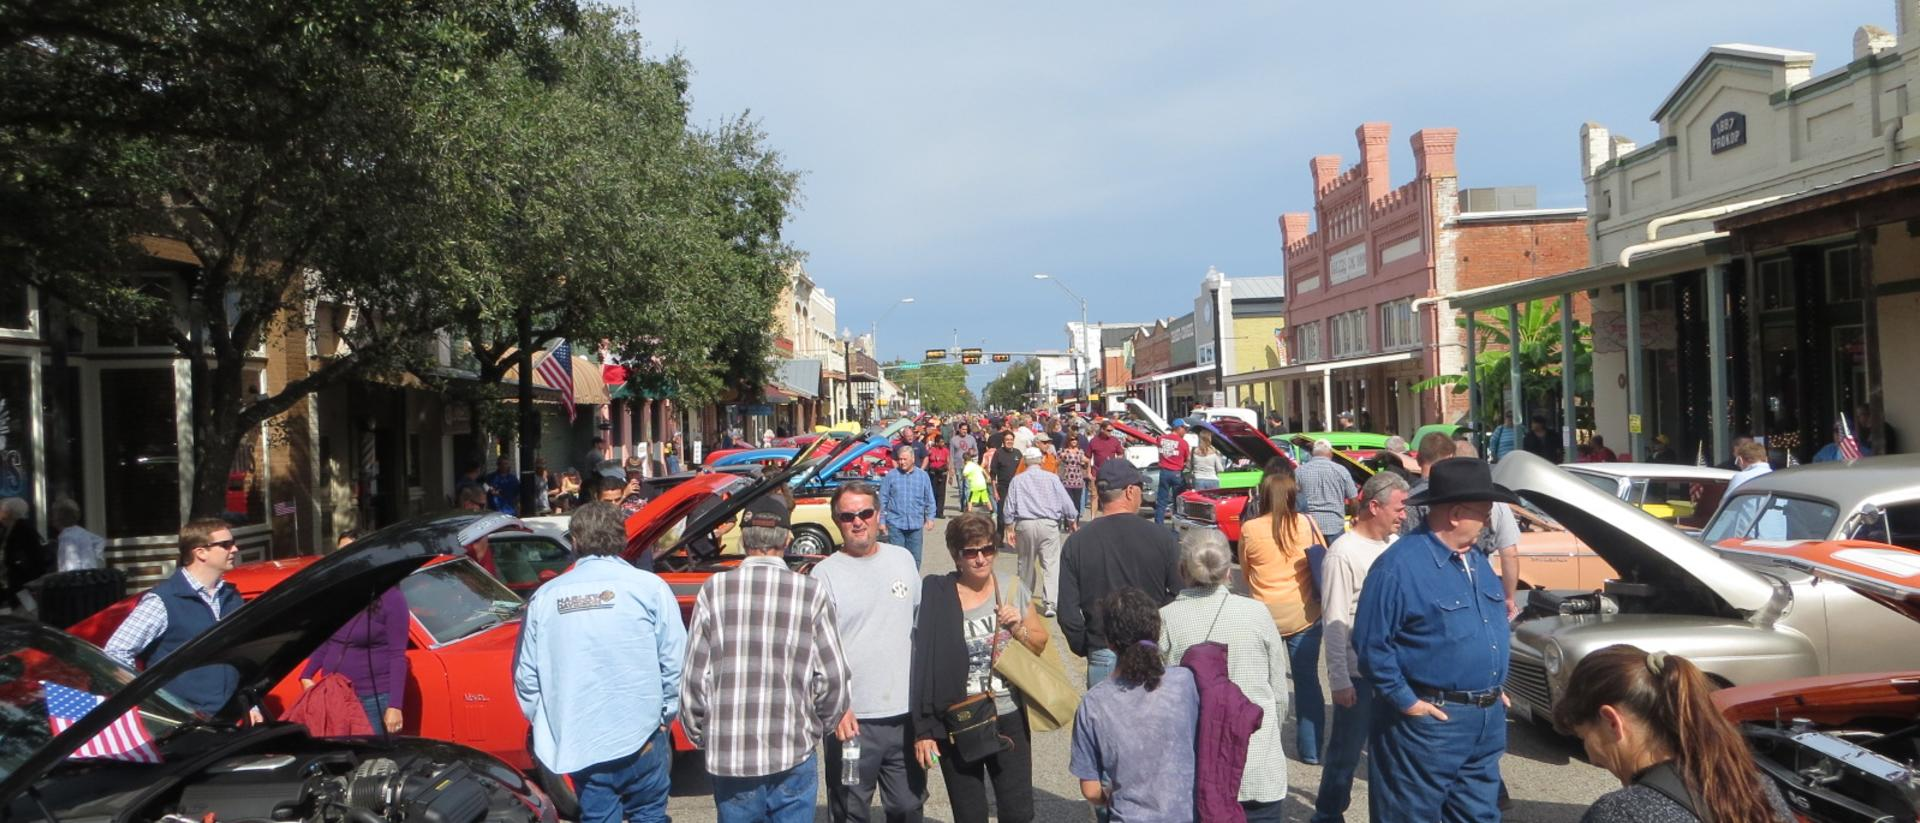 Bastrop Christmas Parade 2020 2020 Festivals in Bastrop TX   Local Celebrations All Year Round